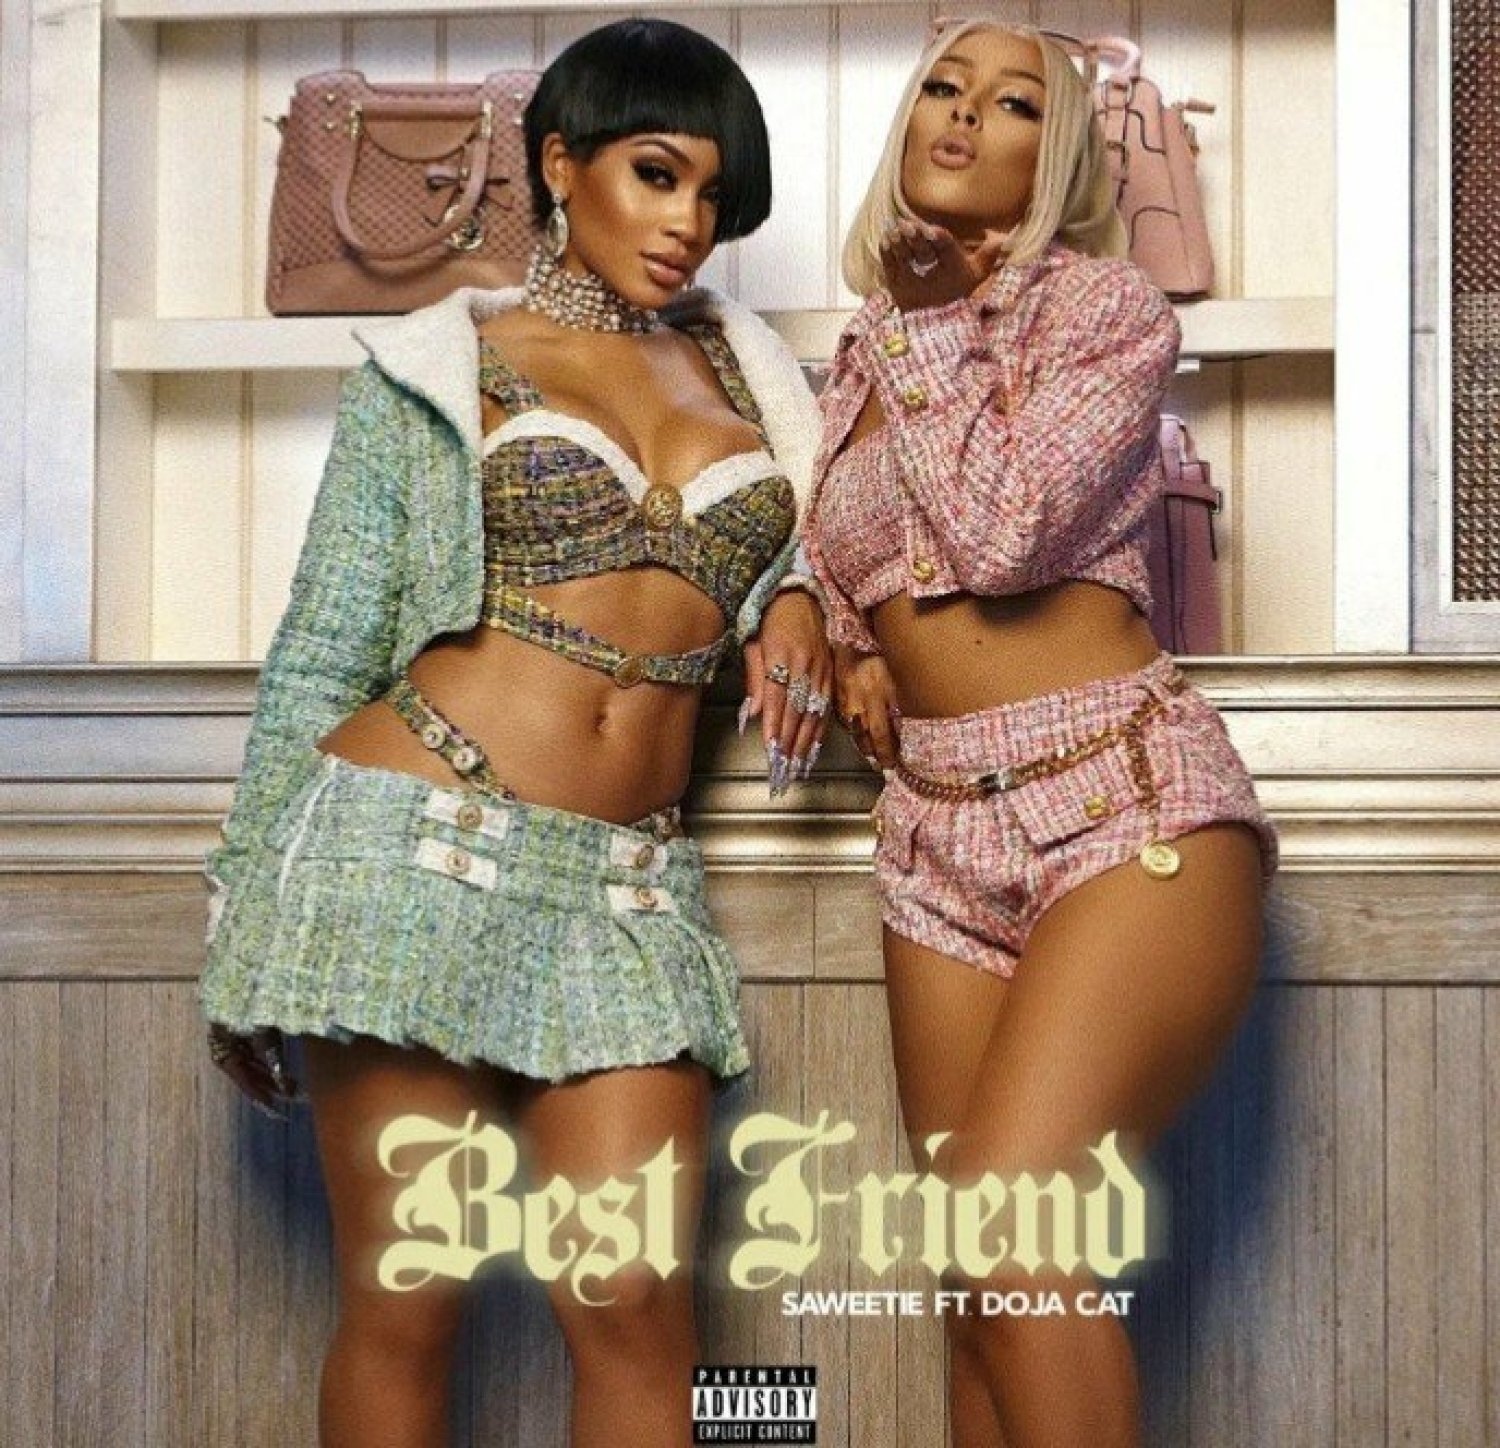 LYRICS: Saweetie Ft. Doja Cat – Best Friend